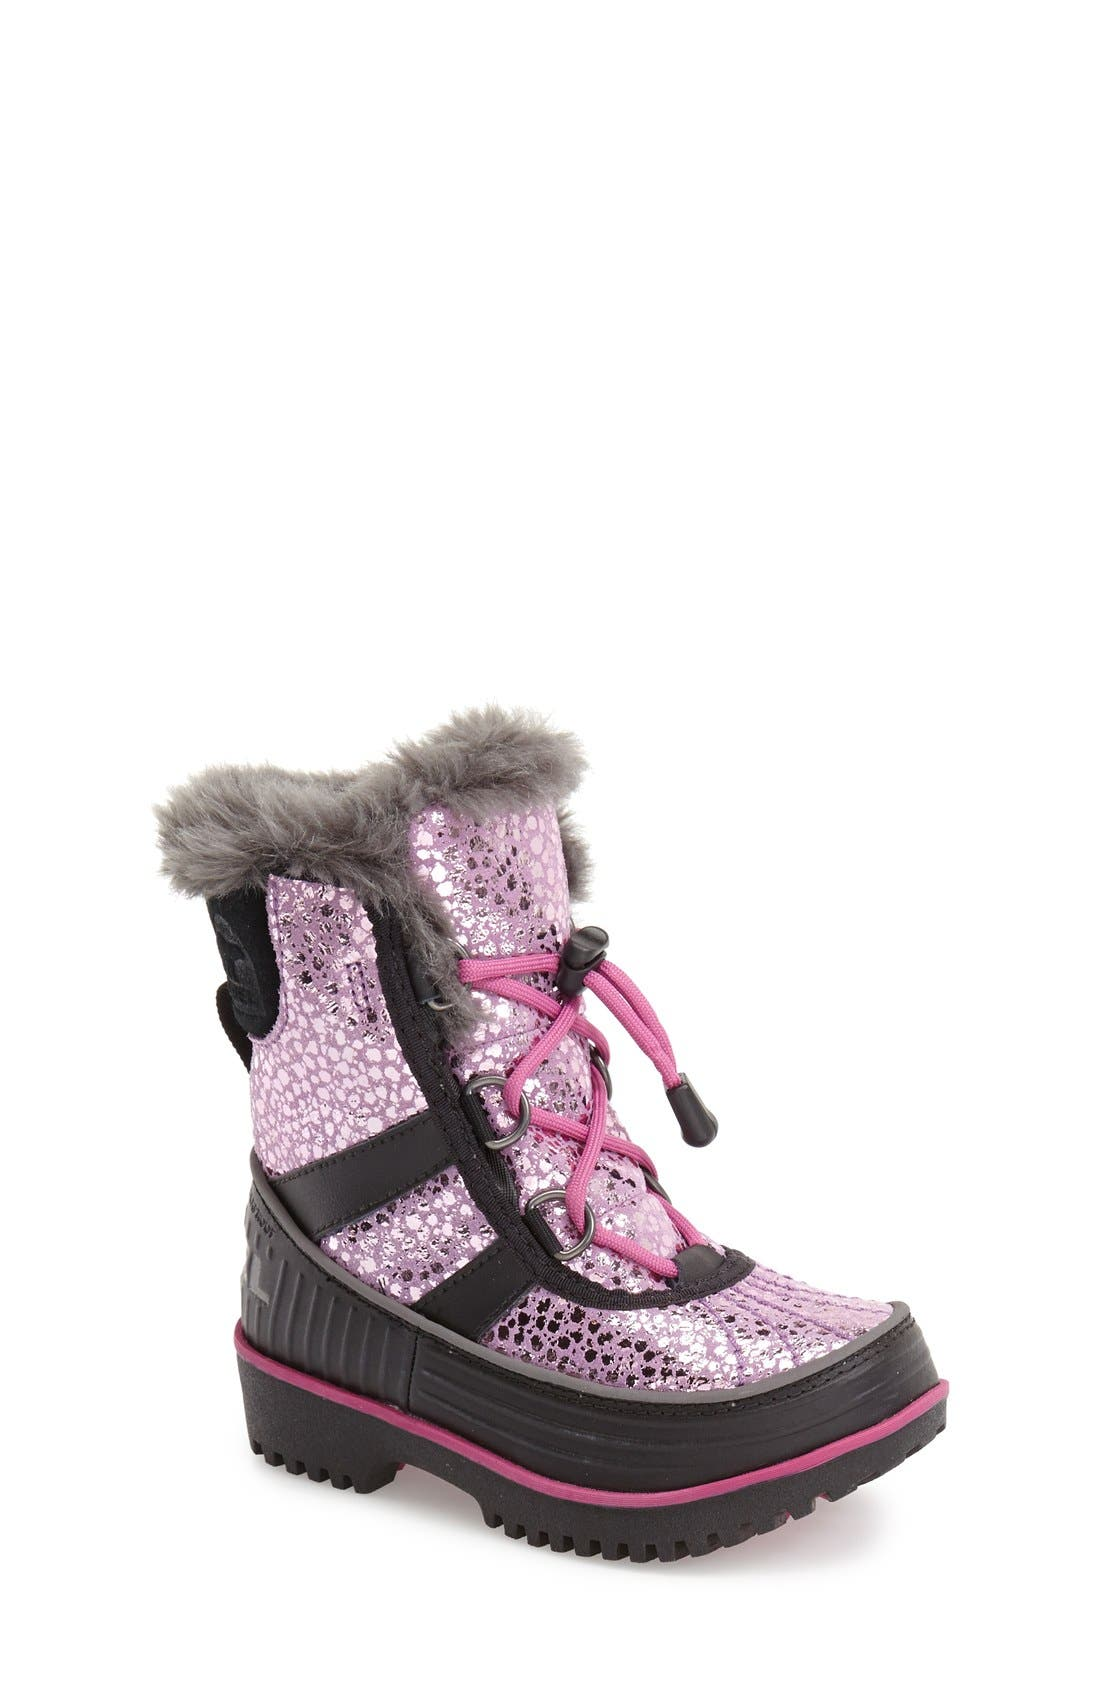 Alternate Image 1 Selected - SOREL 'Tivoli II' Waterproof Snow Boot (Toddler & Little Kid)